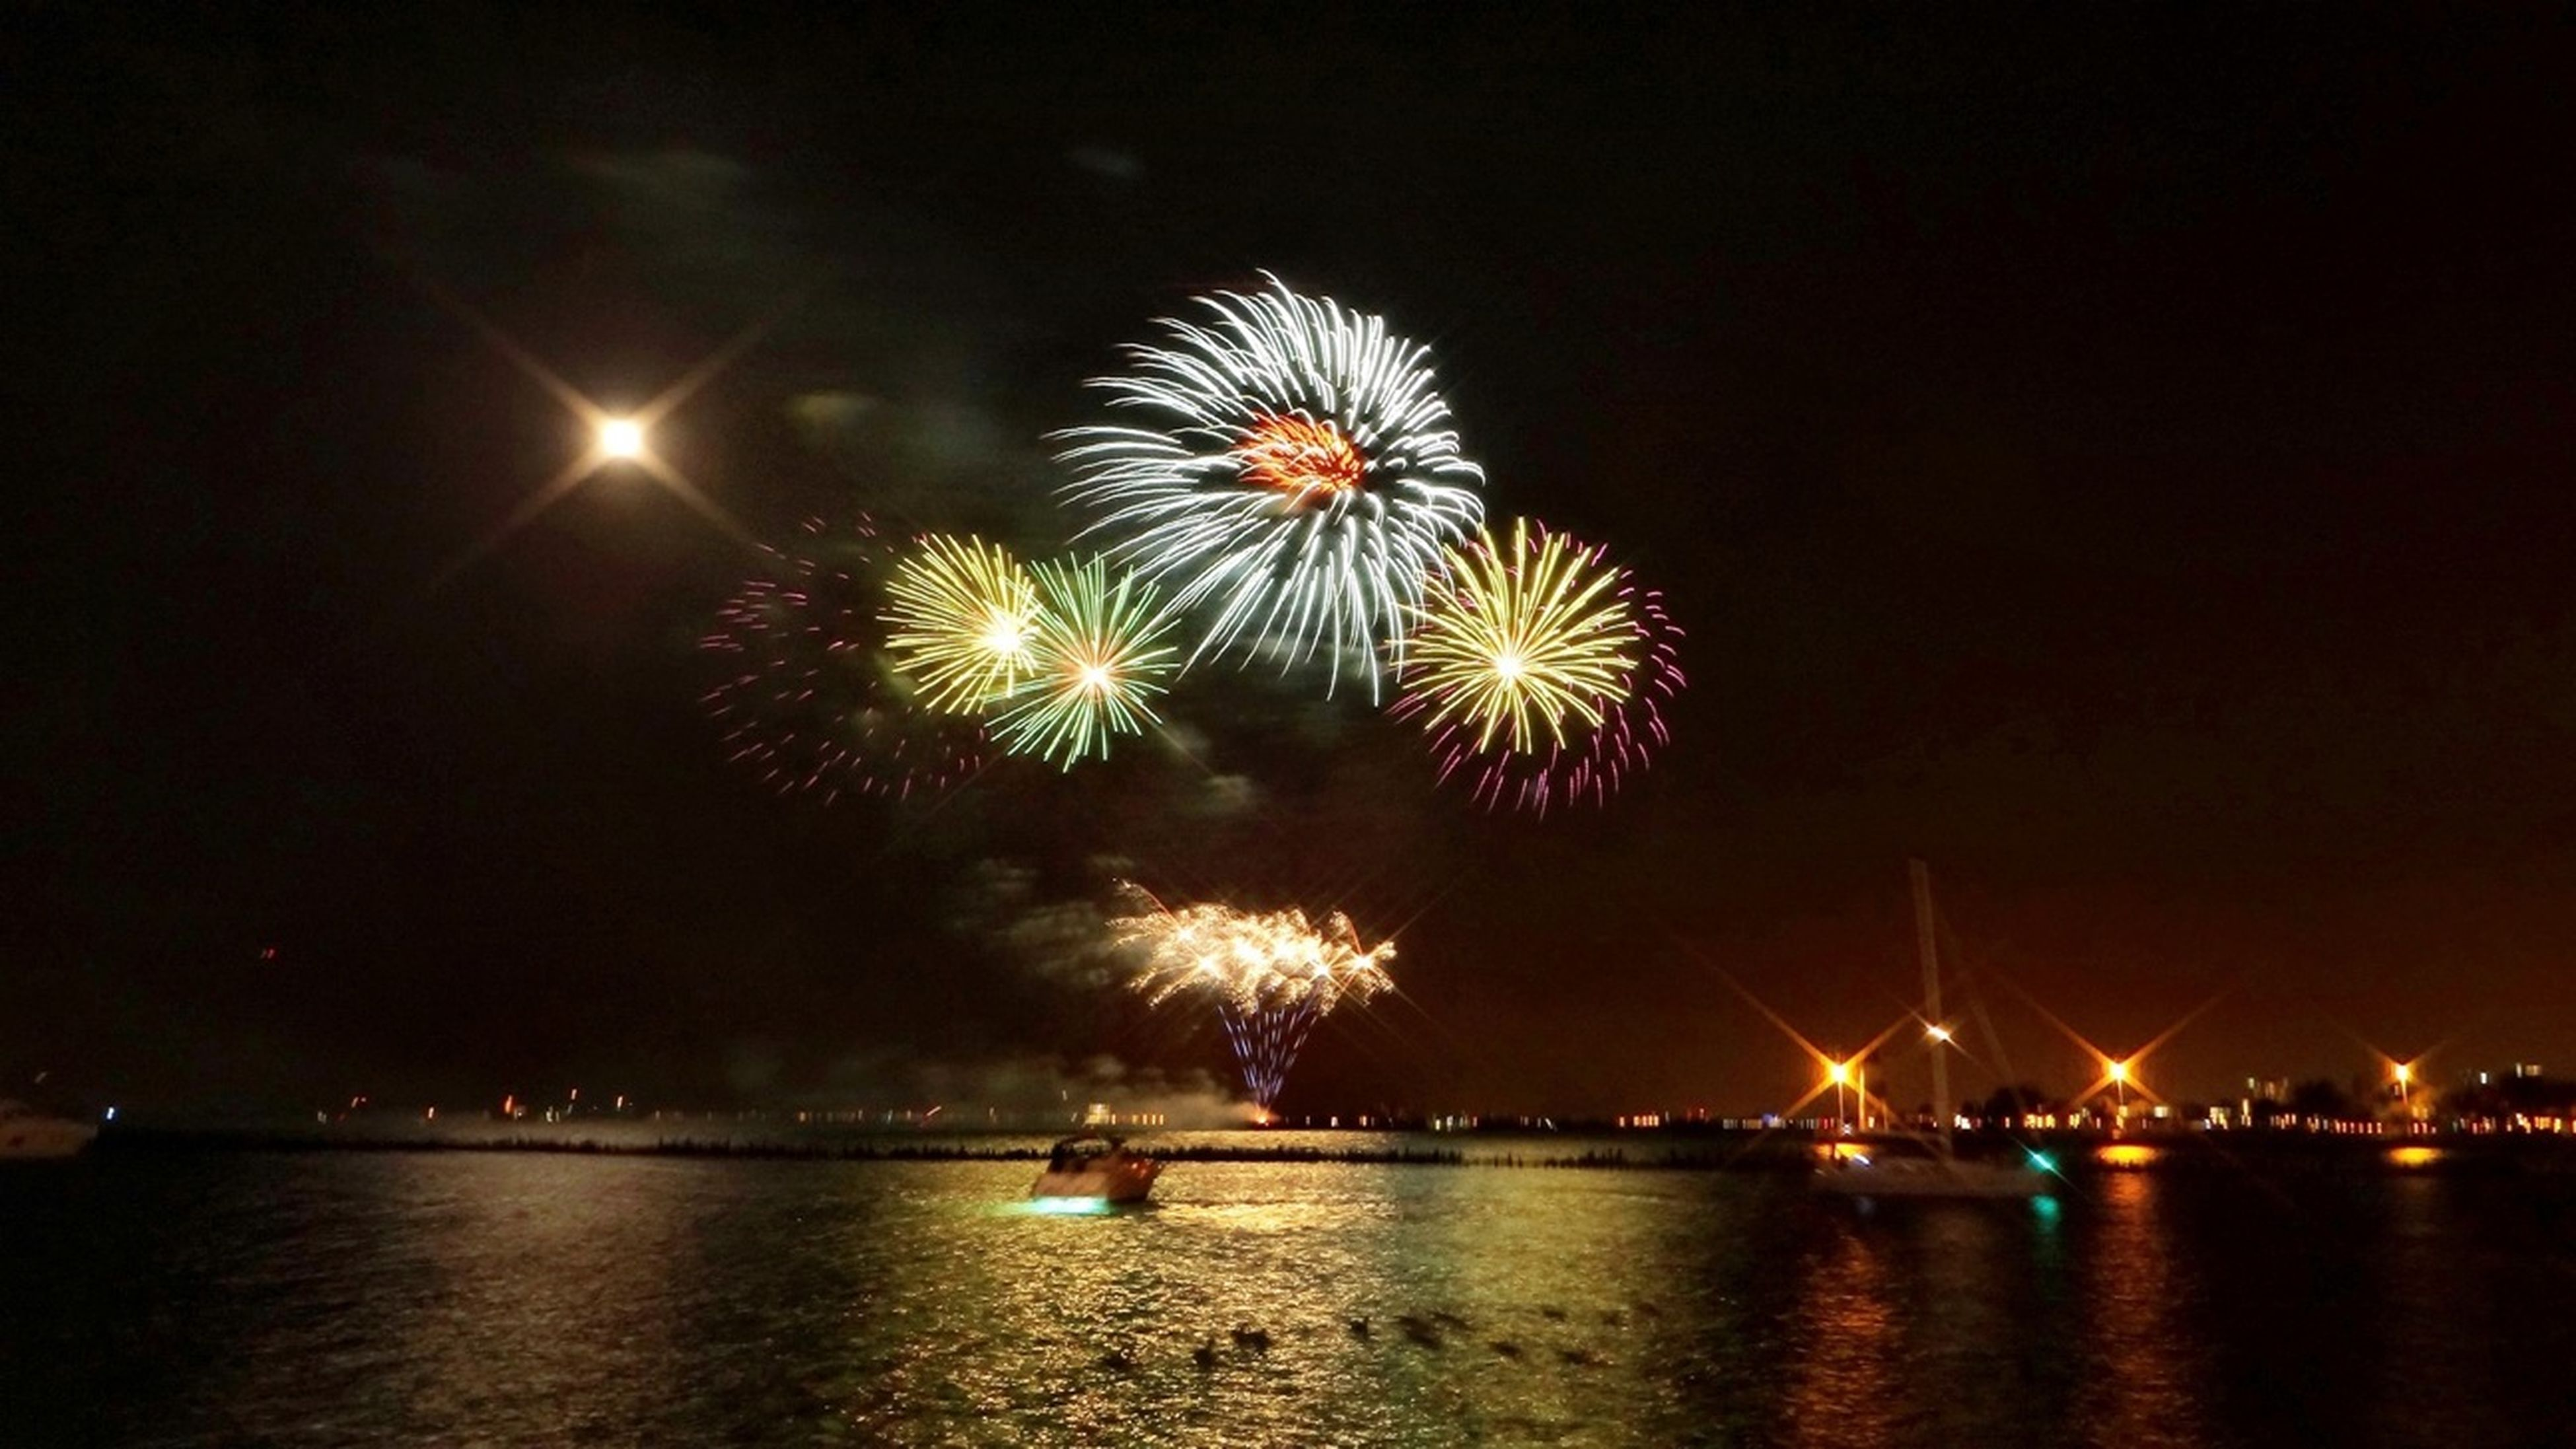 night, illuminated, water, firework display, waterfront, exploding, arts culture and entertainment, celebration, long exposure, firework - man made object, sparks, glowing, sea, sky, reflection, river, motion, firework, event, entertainment